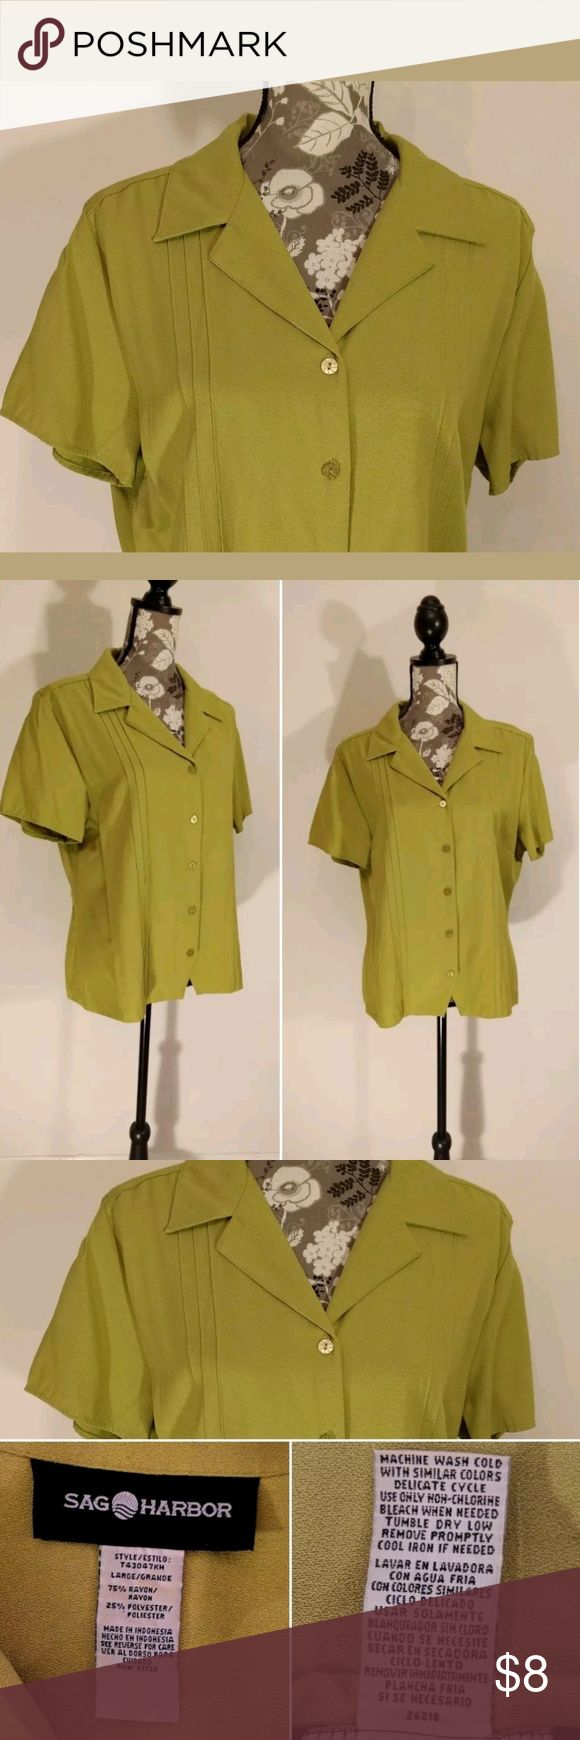 "Sag Harbor Blouse (G4)  Women's Size Large Sag Harbor Blouse (G4)  Women's Size Large  Short Sleeve?  Button Front  Tailored Pleat Details on Front and Sleeves  Lovely?Green?Color  Great Career Piece  Approx Meas: Armpit to Armpit 23"" / Length 24""  SMOKE FREE HOME Sag Harbor Tops"